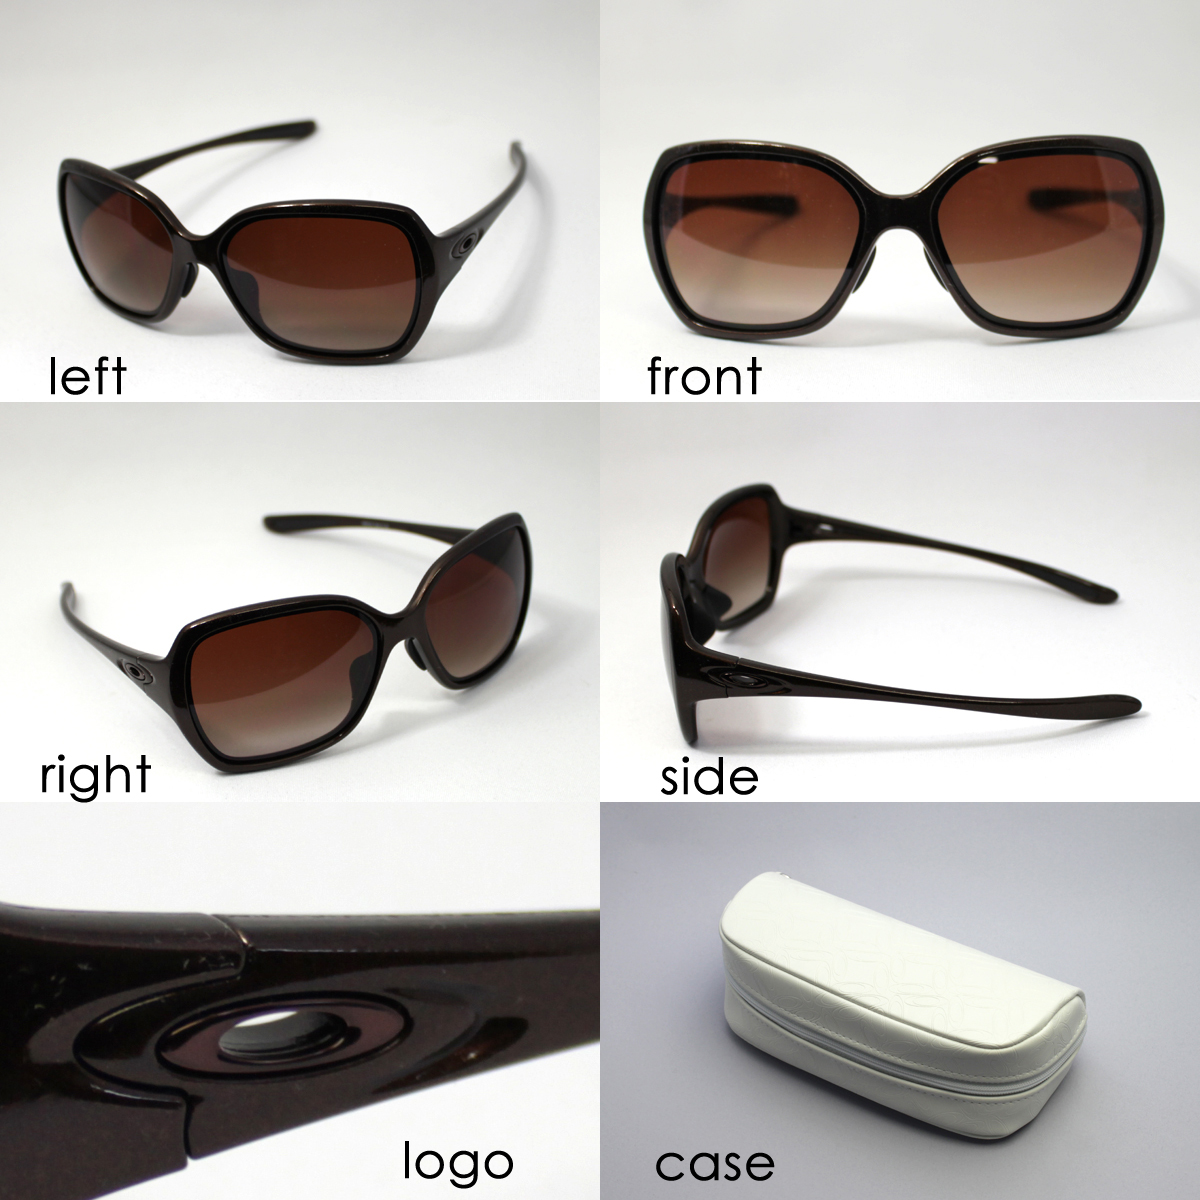 Oakley sunglasses asian fit - Oo9210 03 Oakley Sunglasses Over Time Asian Fit Overtime Oakley Asian Fit Active